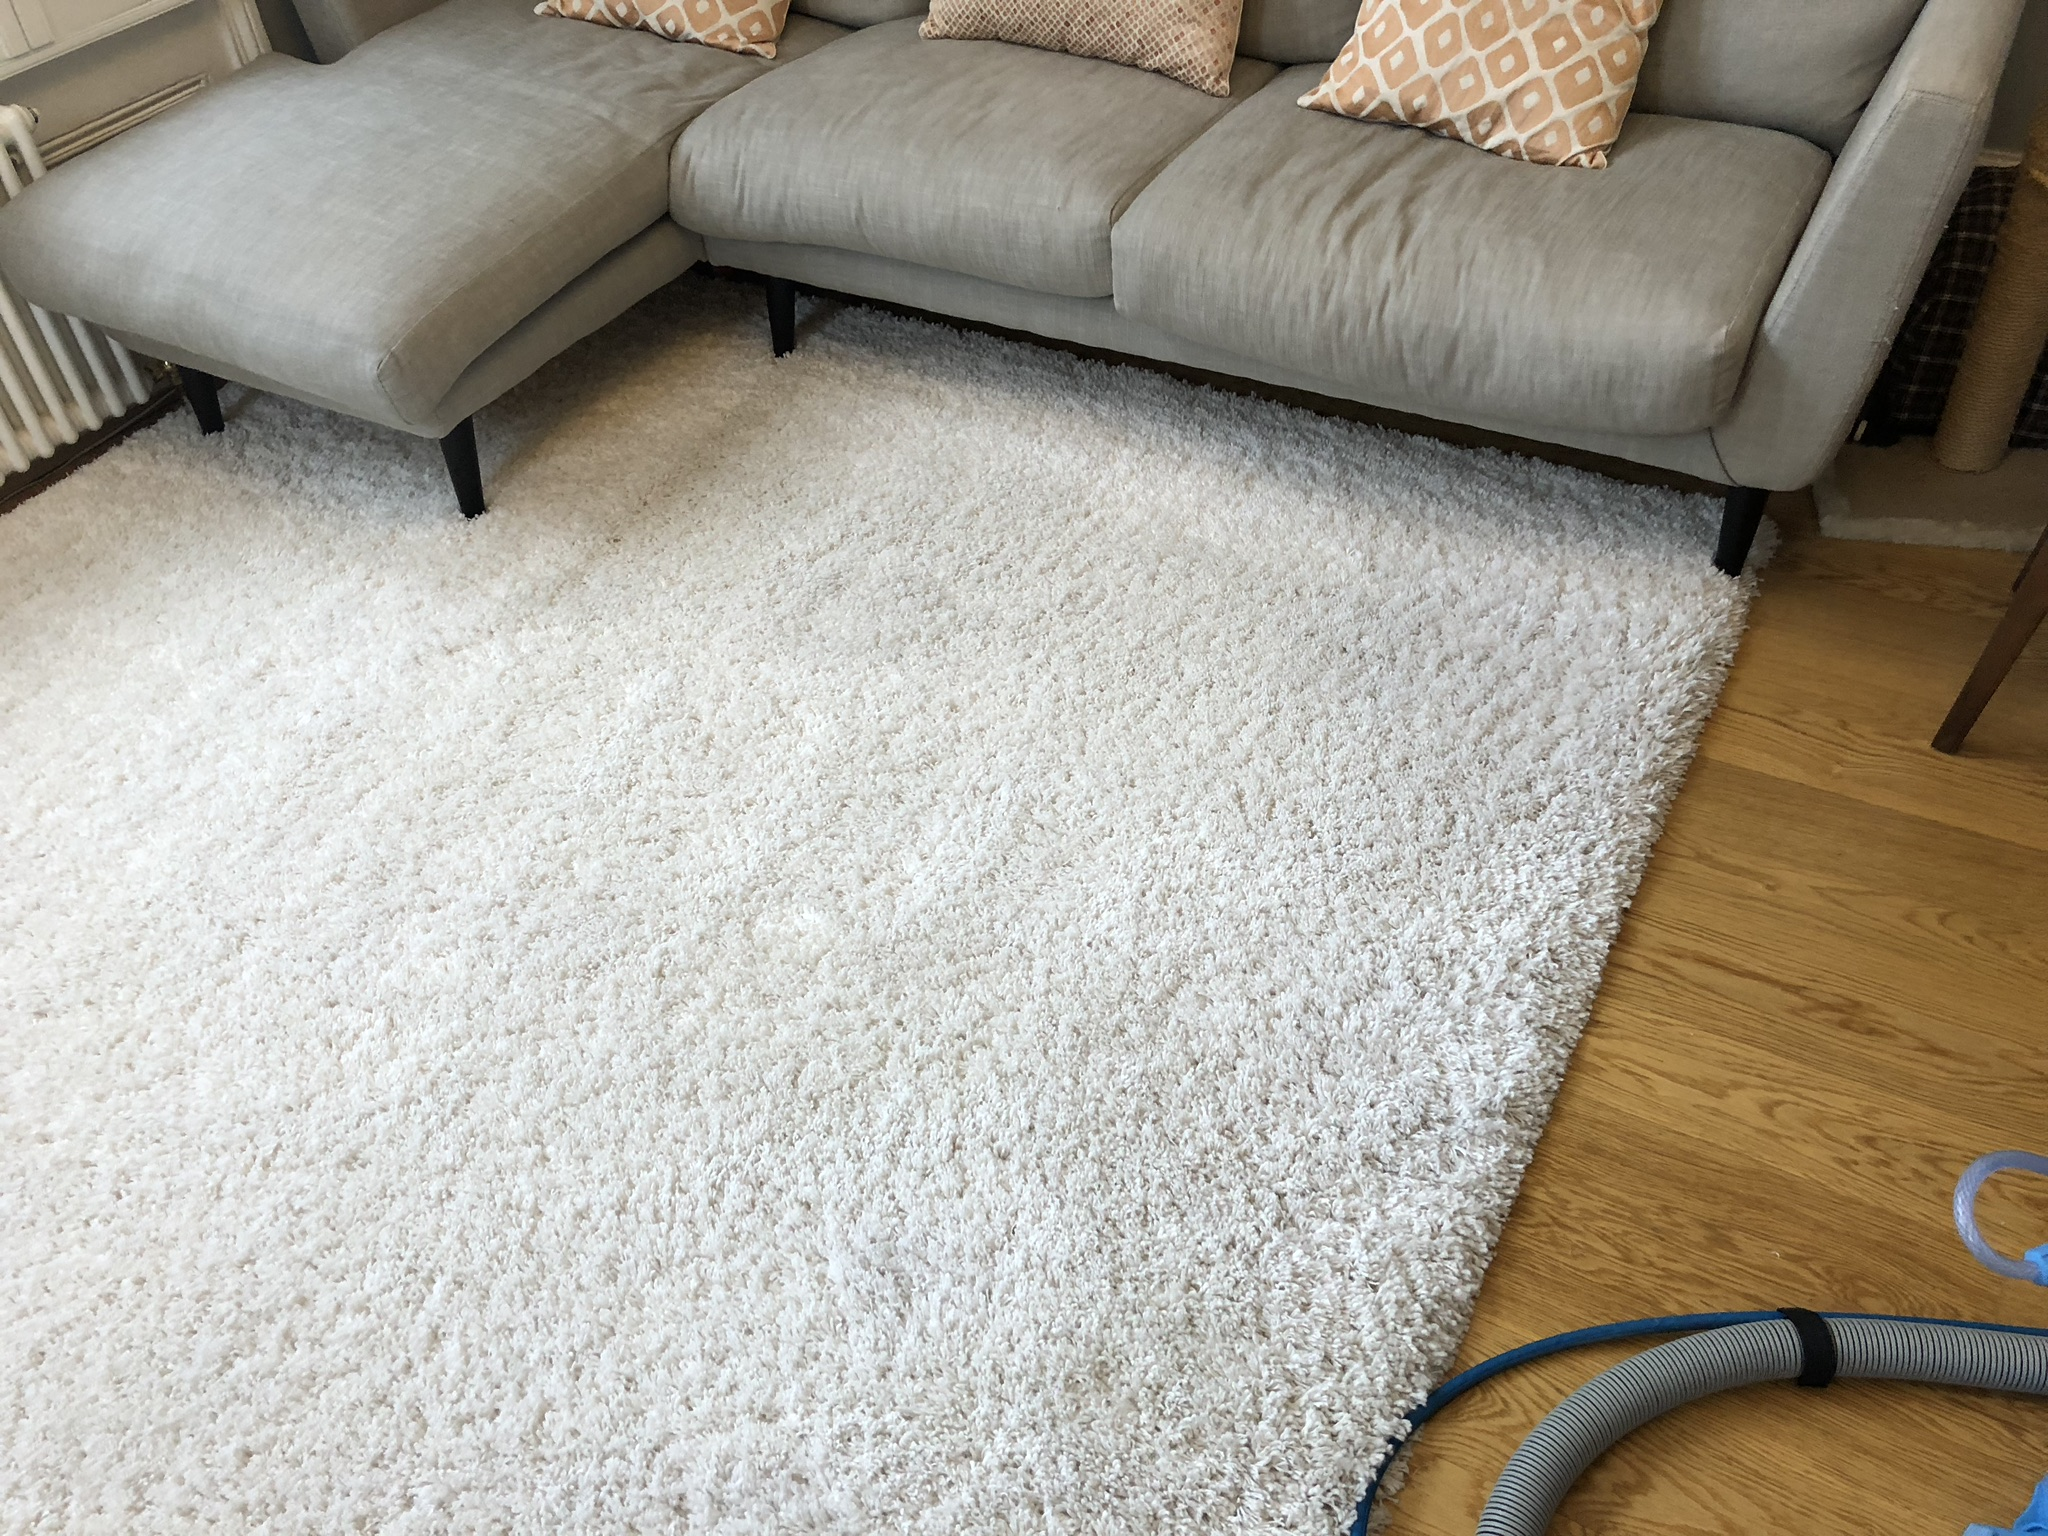 Rug Cleaning London Service Of The Highest Standards